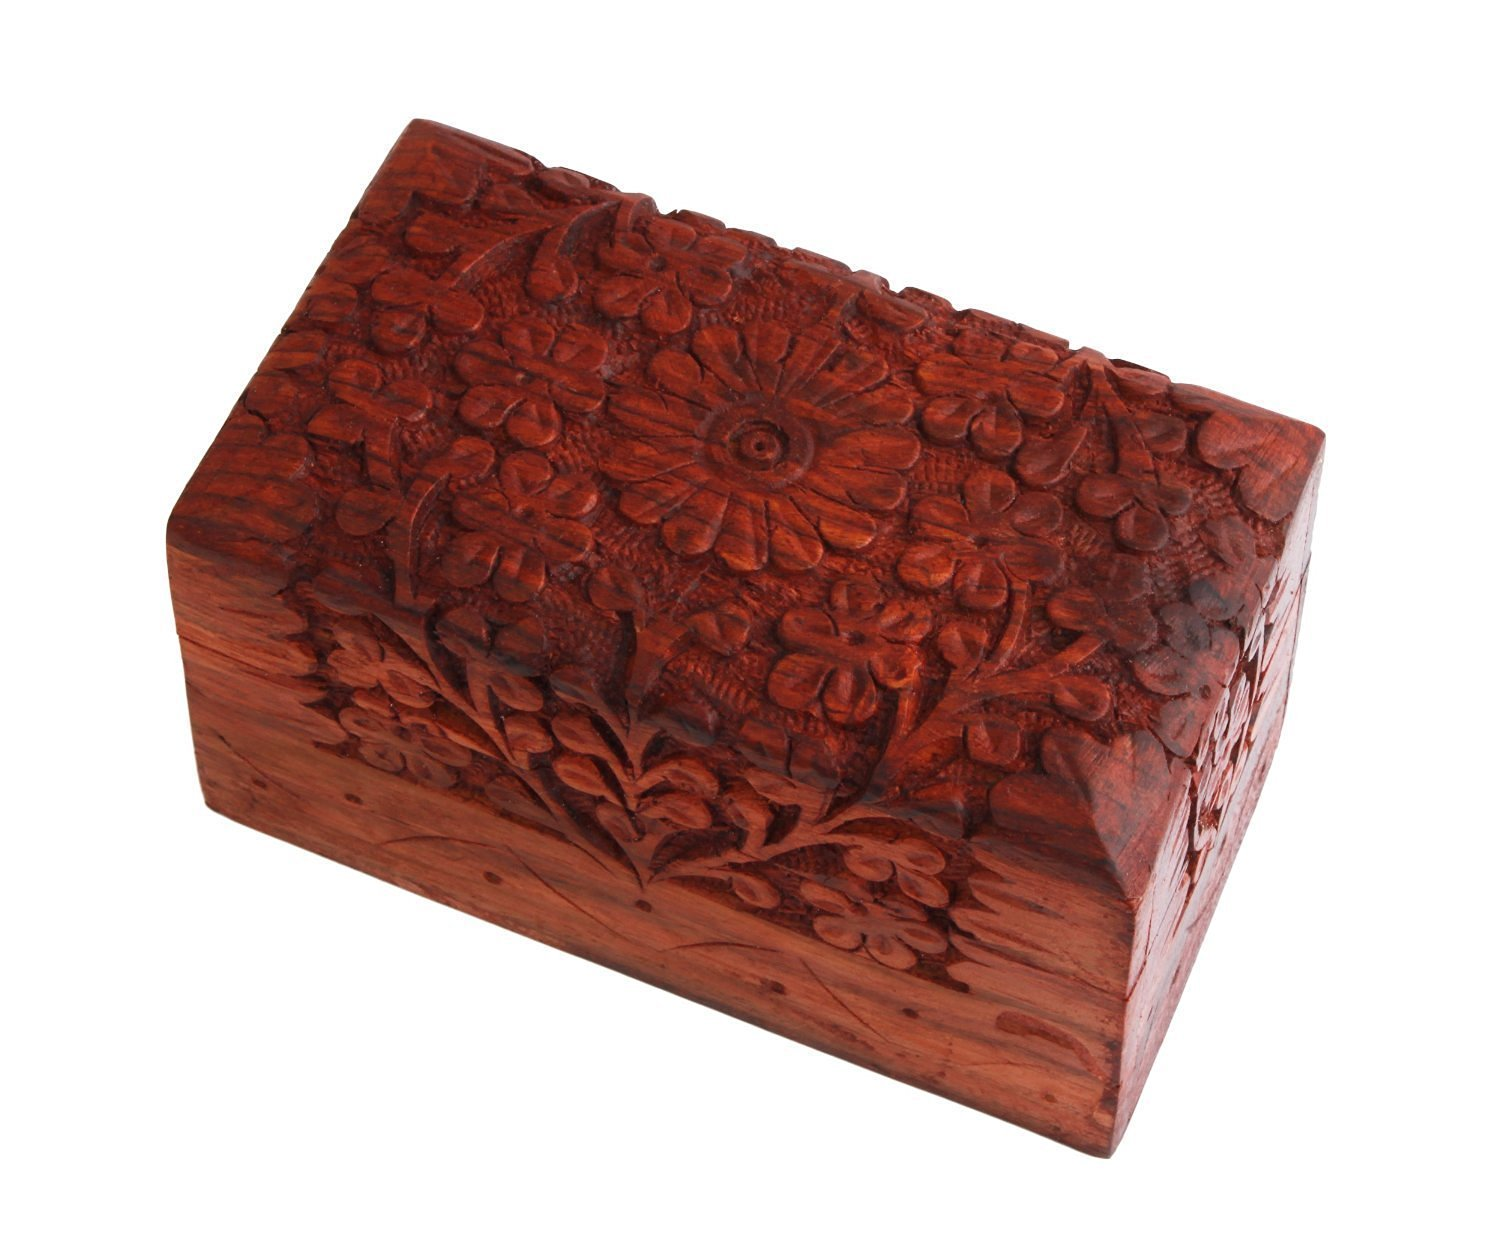 diwali-gifts-exotic-hand-carved-wooden-desk-diwali-gifts